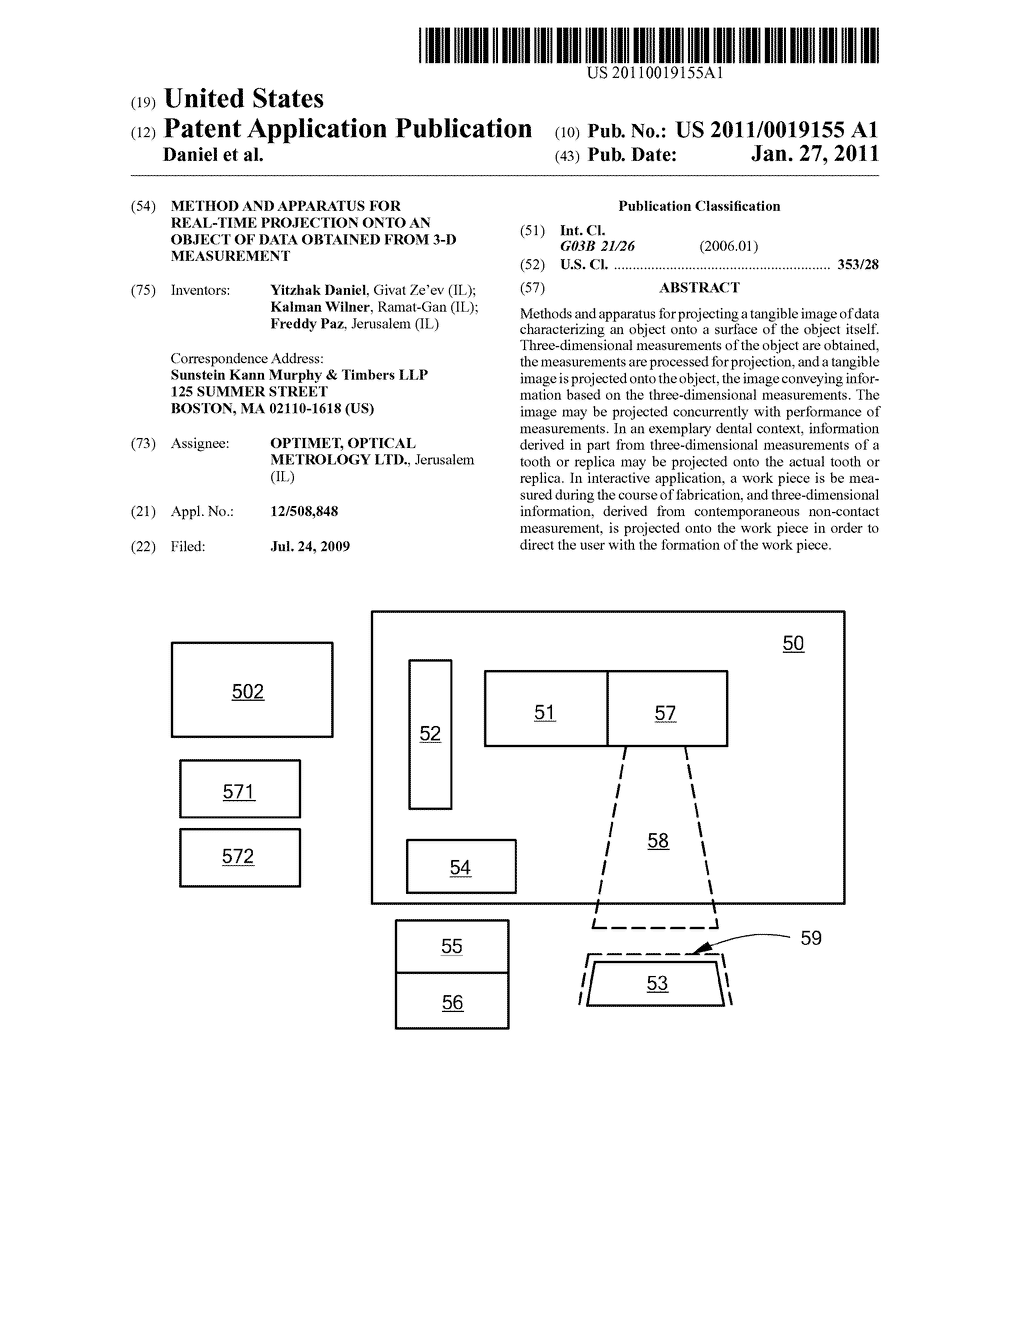 Method and Apparatus for Real-Time Projection onto an Object of Data Obtained from 3-D Measurement - diagram, schematic, and image 01